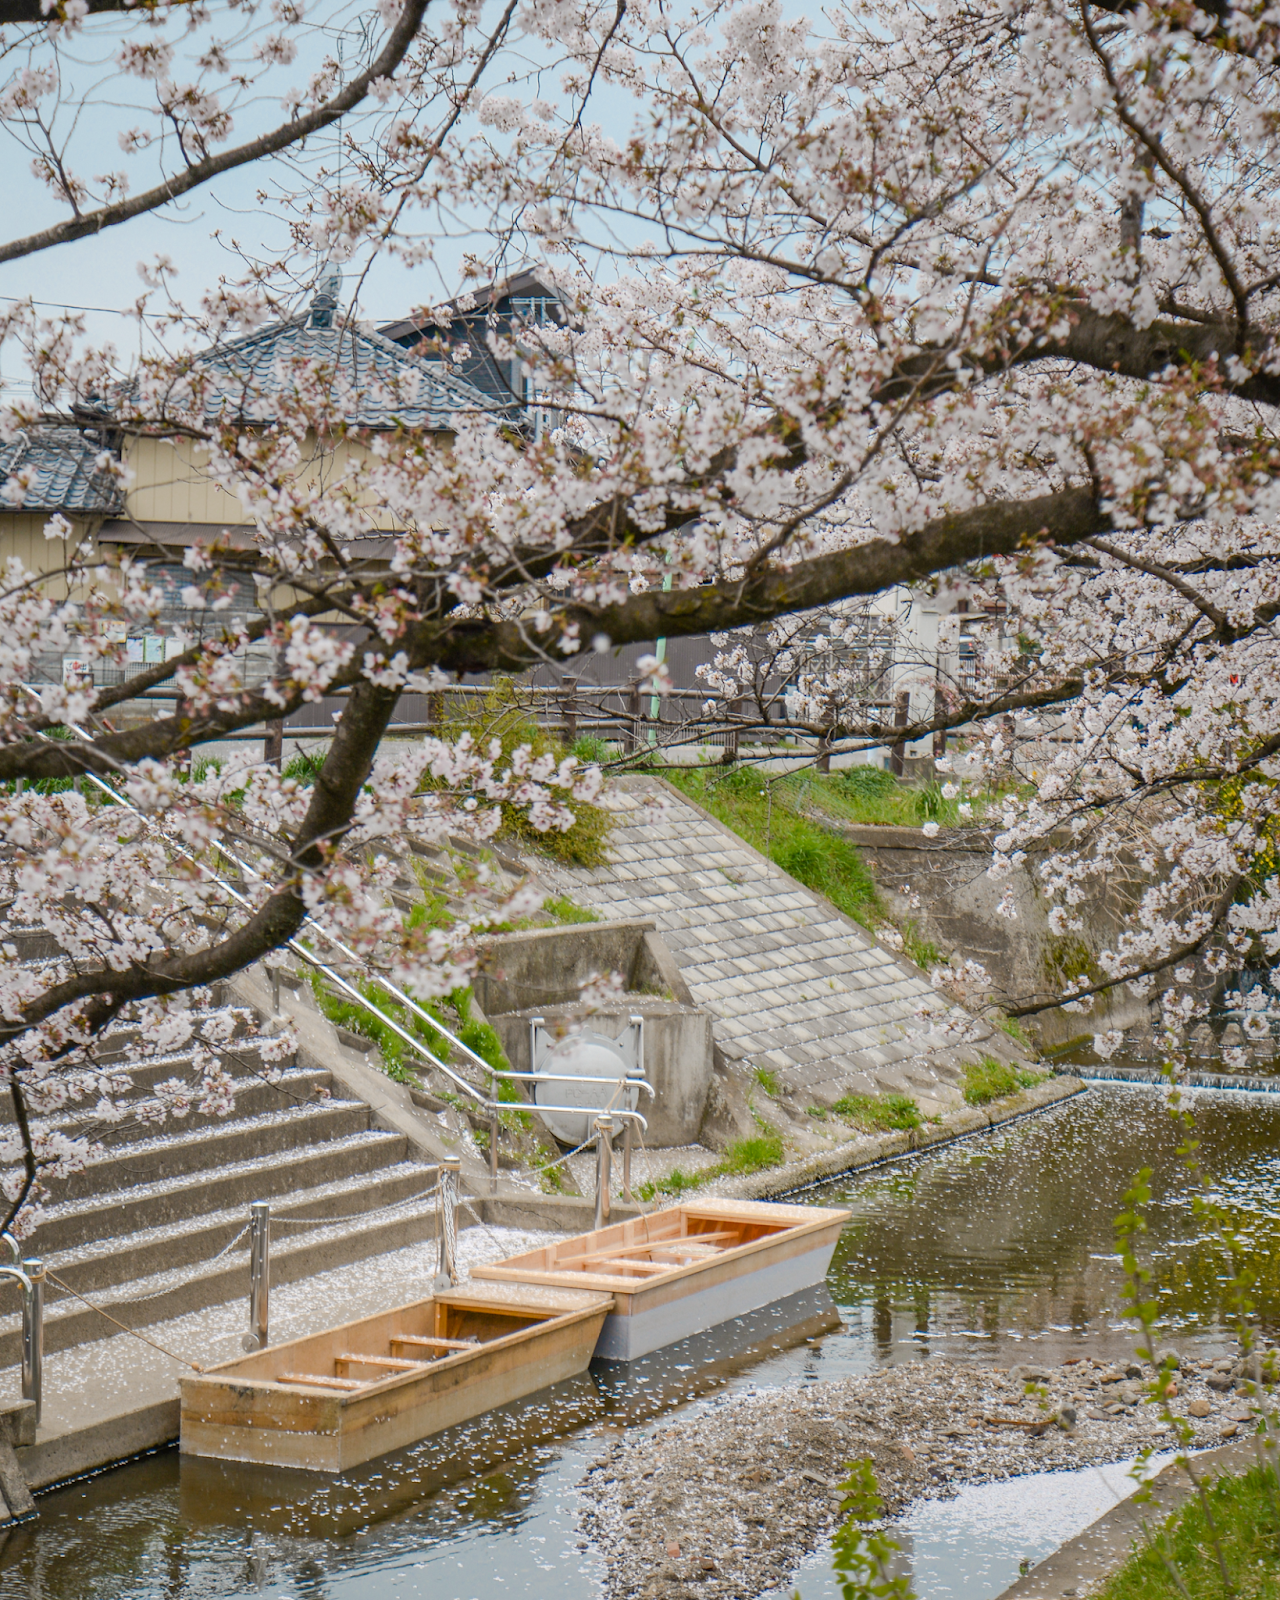 Best viewing spots for cherry blossom, Kawagoe Tokyo, Tokyo's Not So Secret Cherry Blossoms Spots That You Might Not Know Of - Style and Travel Blogger Van Le (FOREVERVANNY.com)